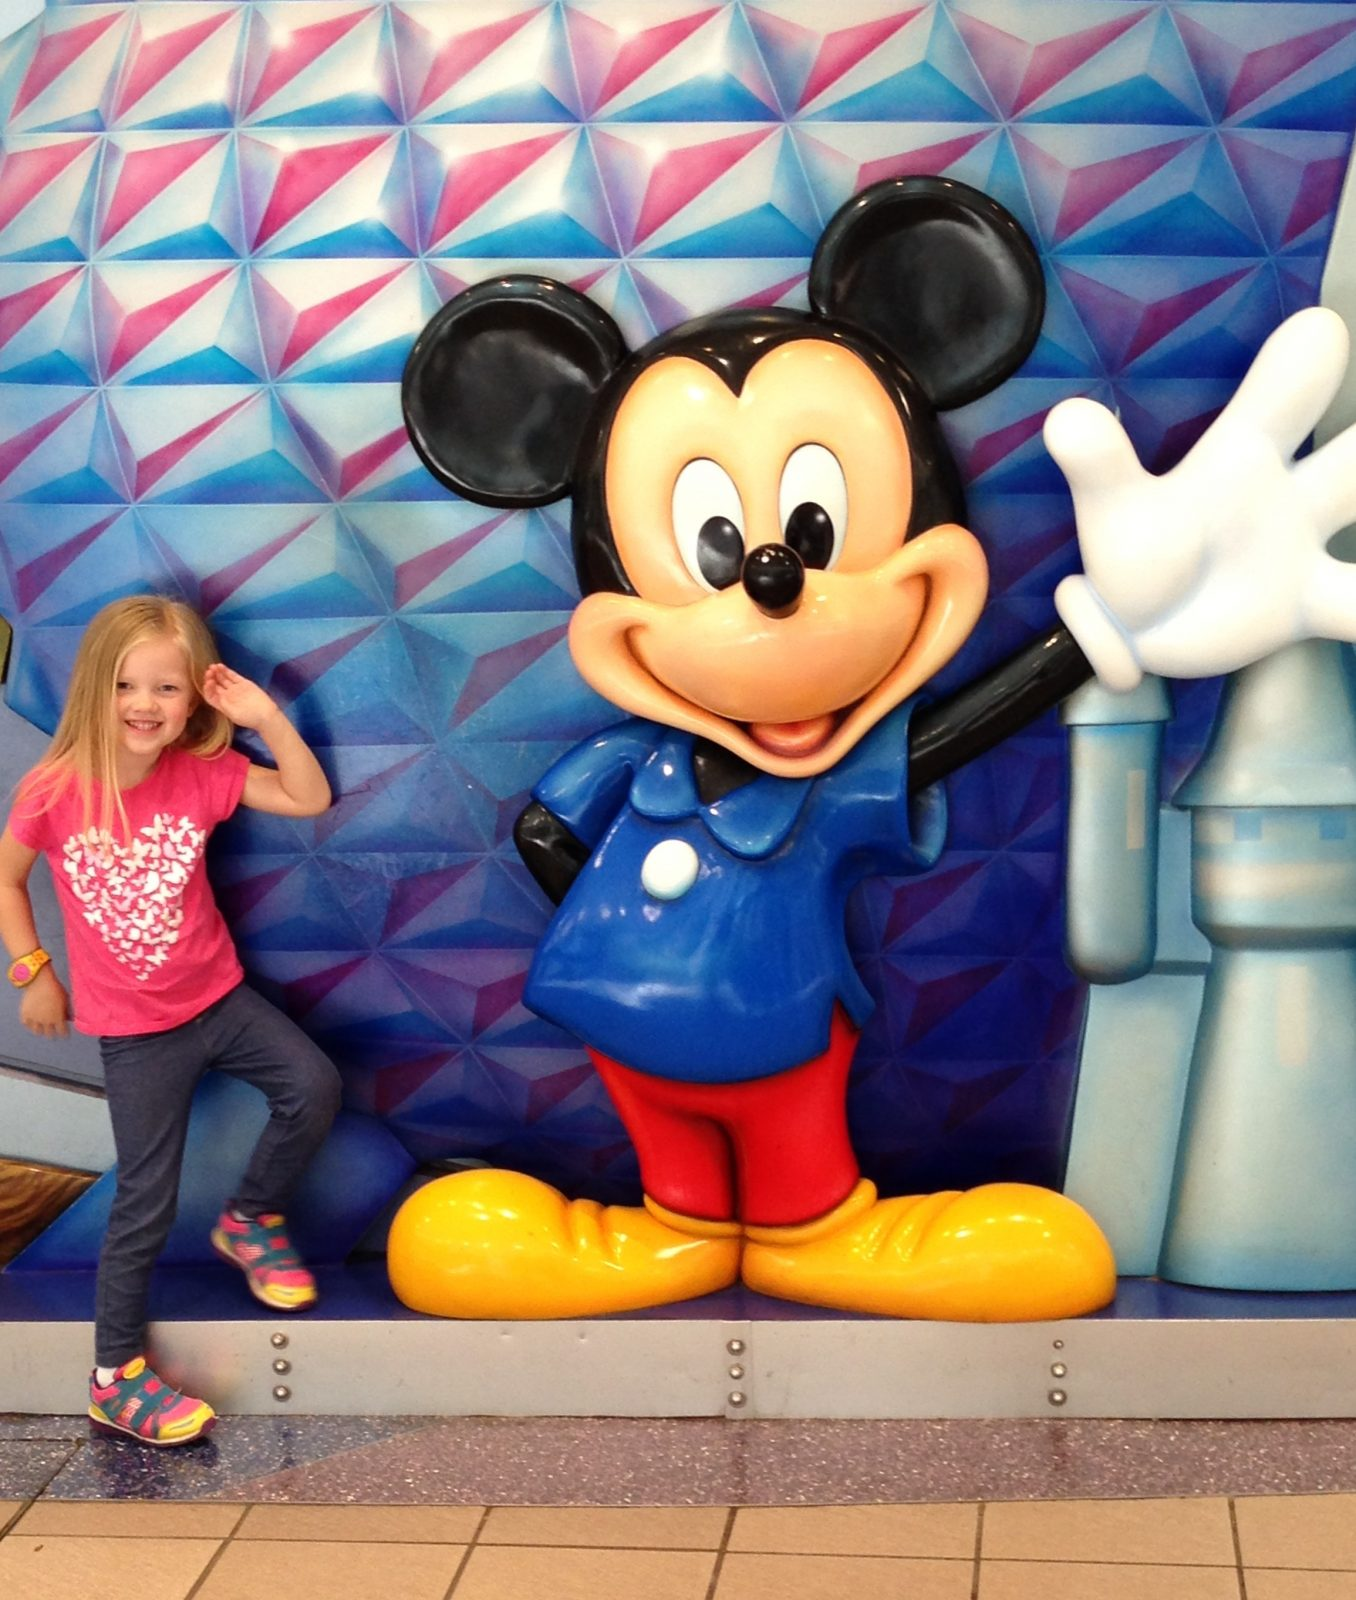 Little girl posing next to mickey statue